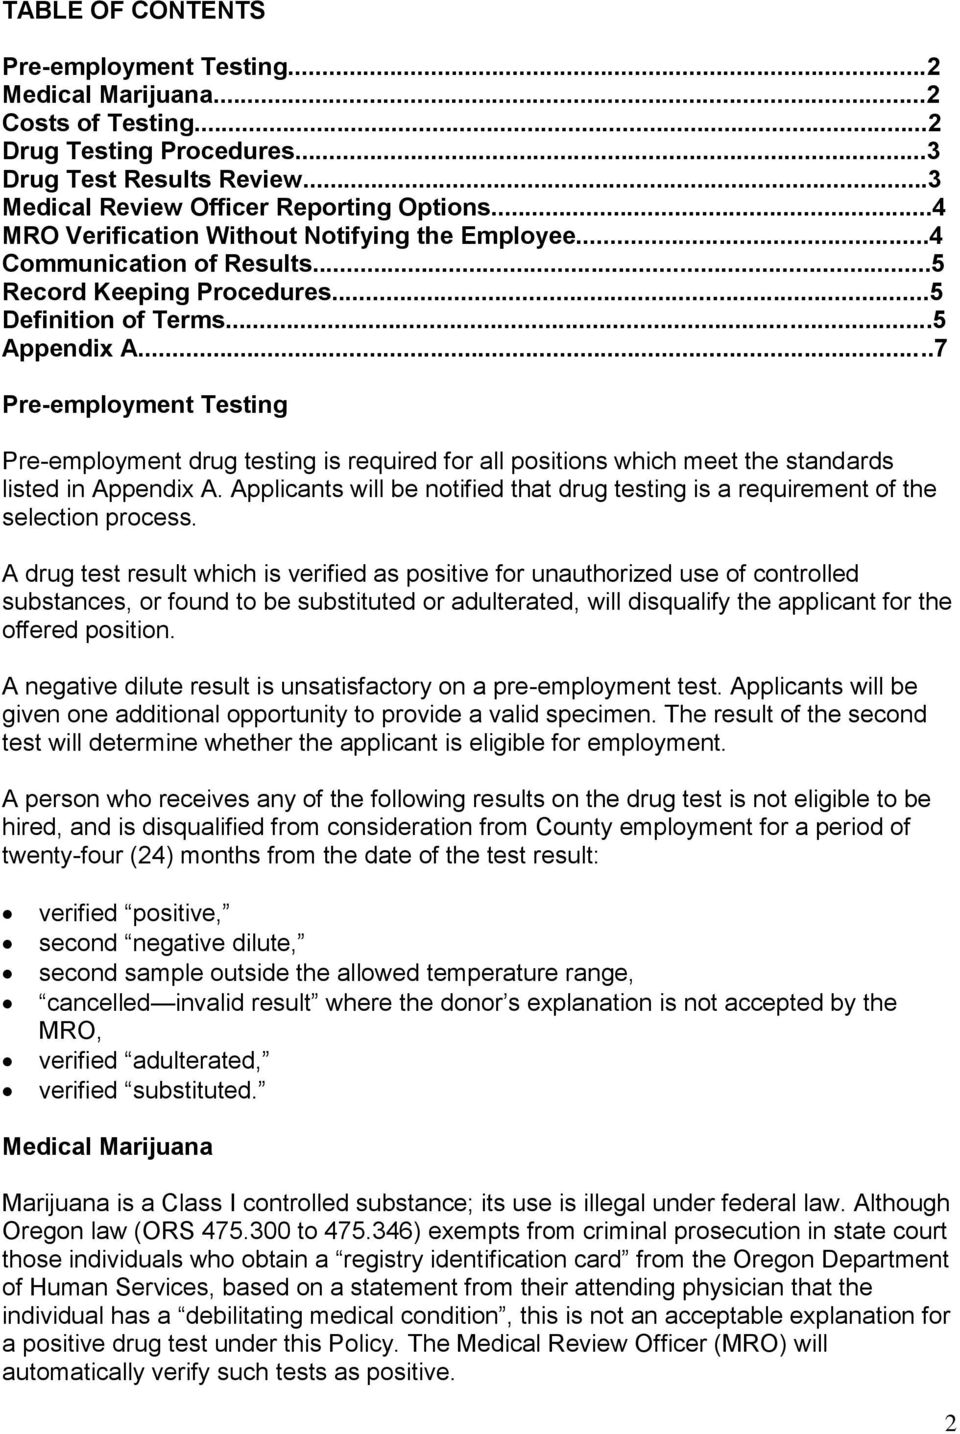 Negative Dilute Drug Test >> Pre Employment Drug Testing Policy Pdf